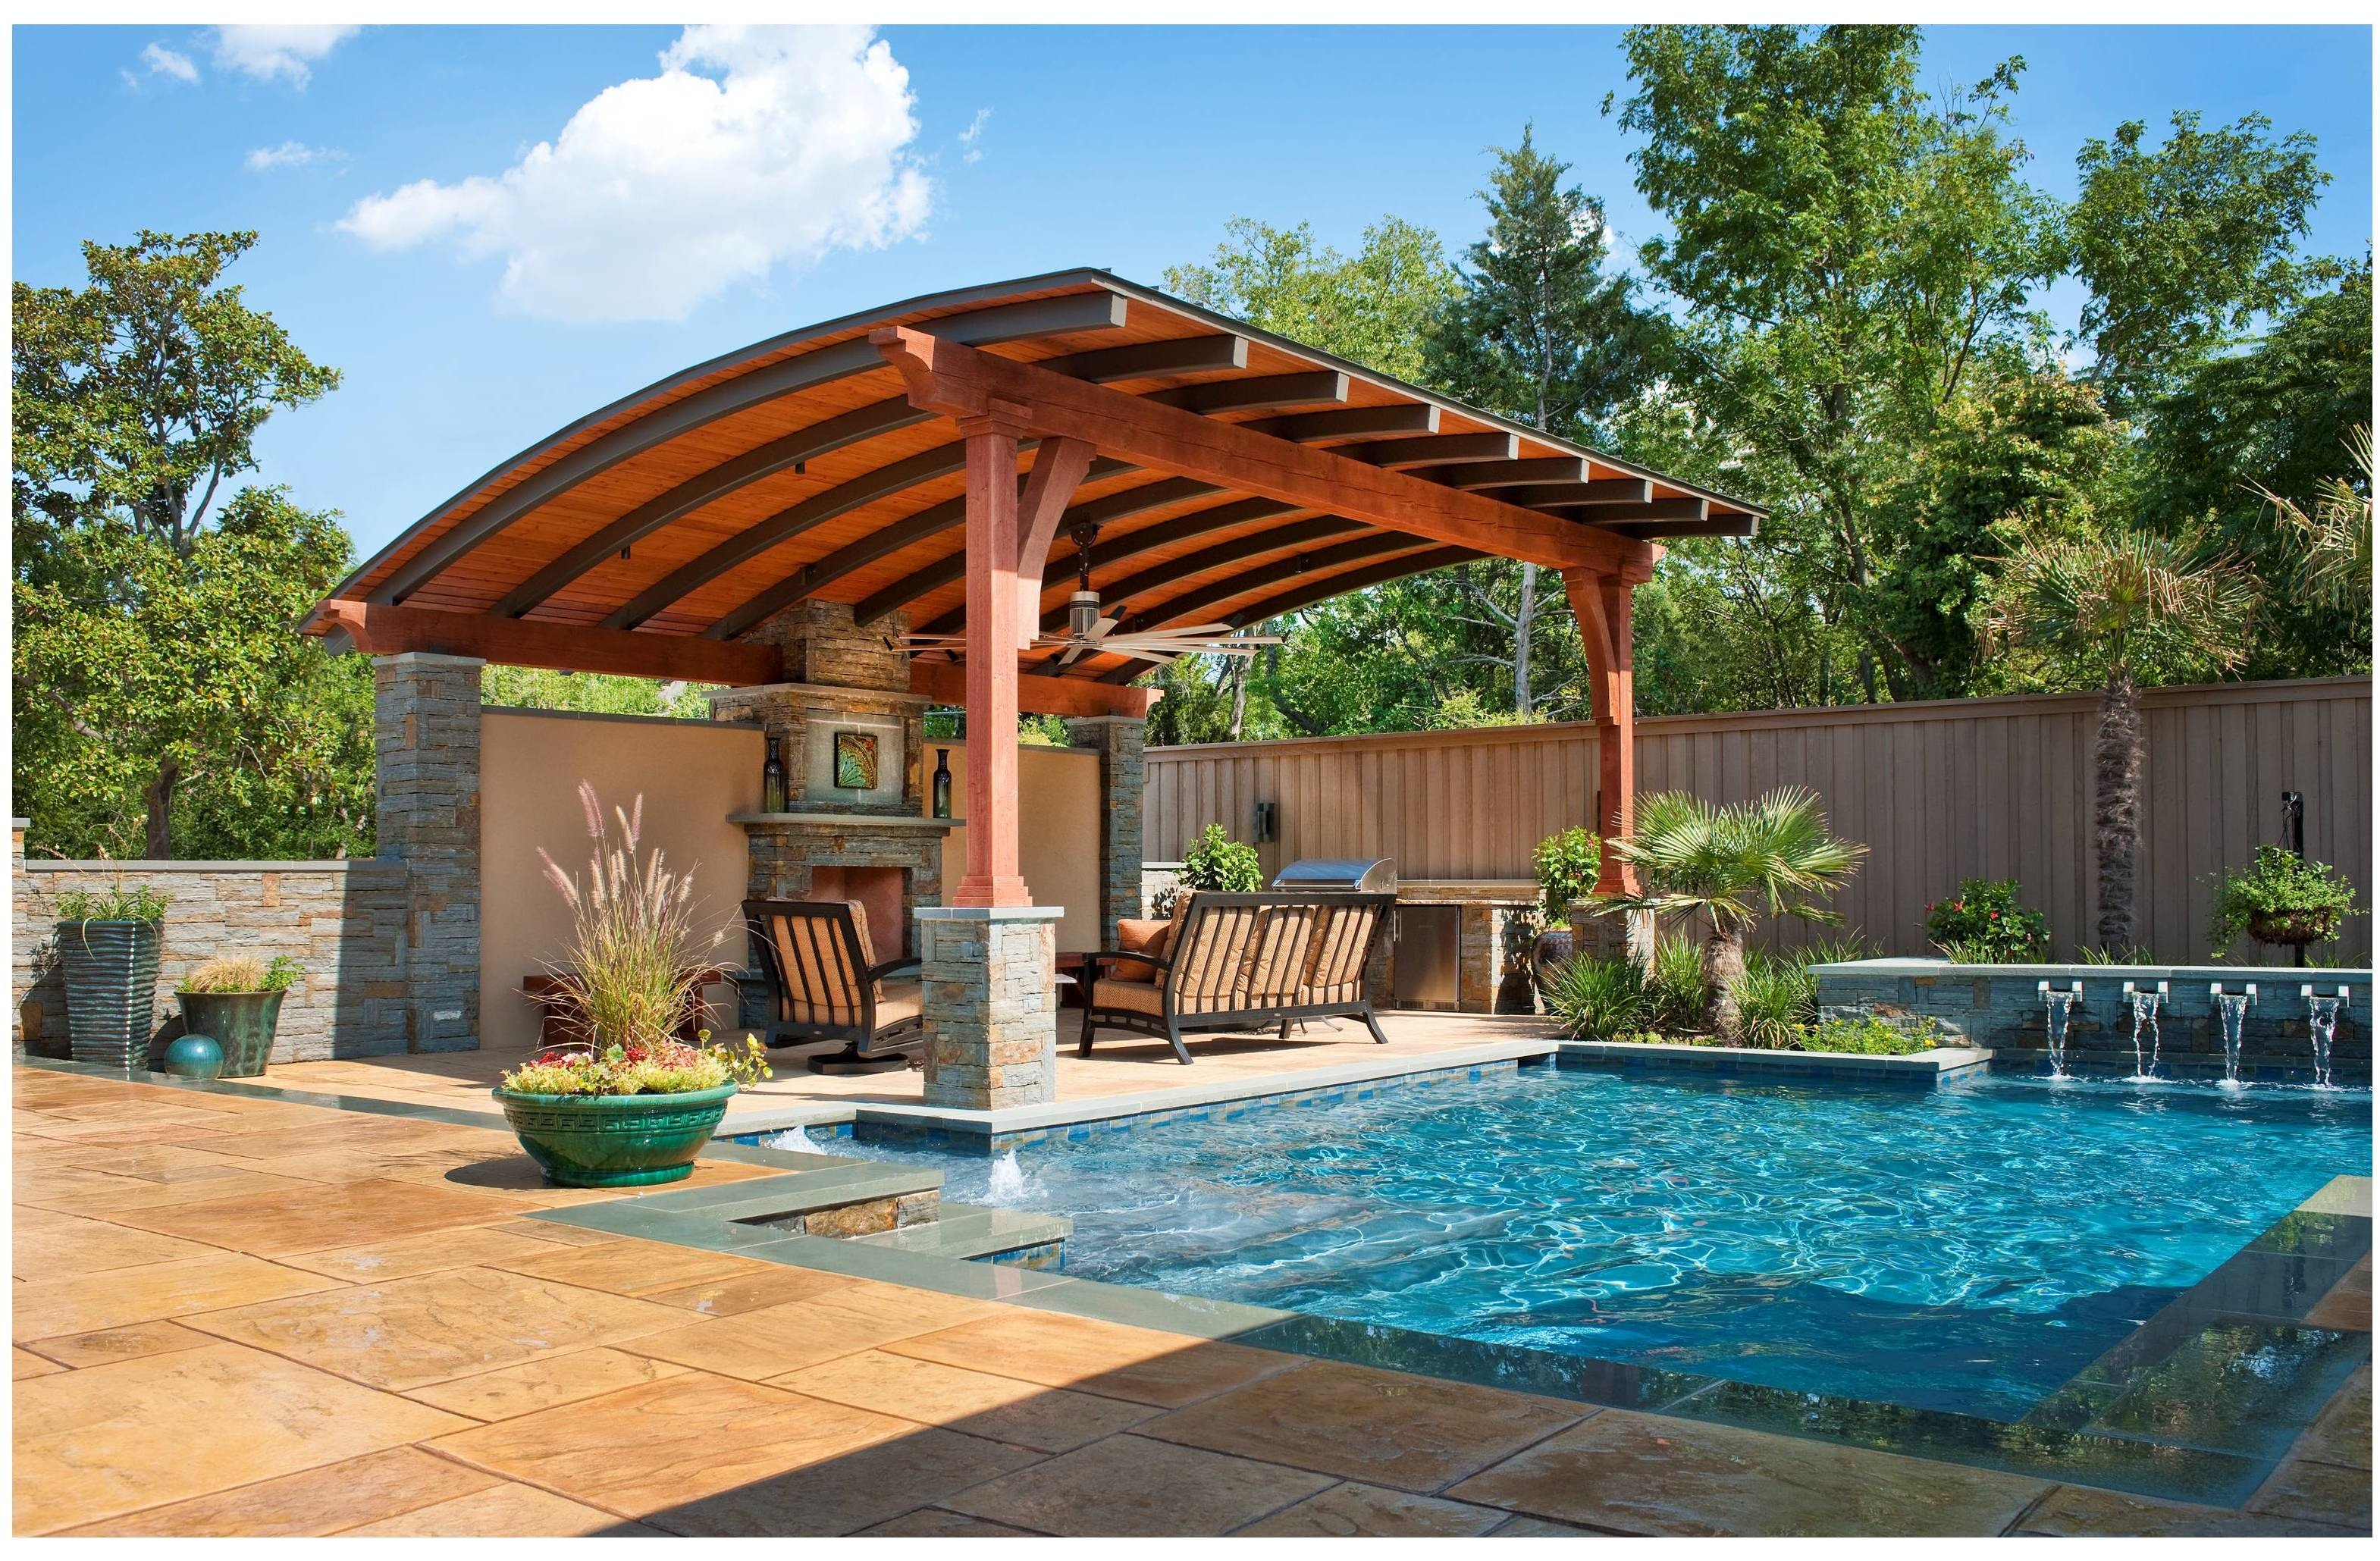 Southwest fence deck earns 2012 coty award for south for Southwest pergola